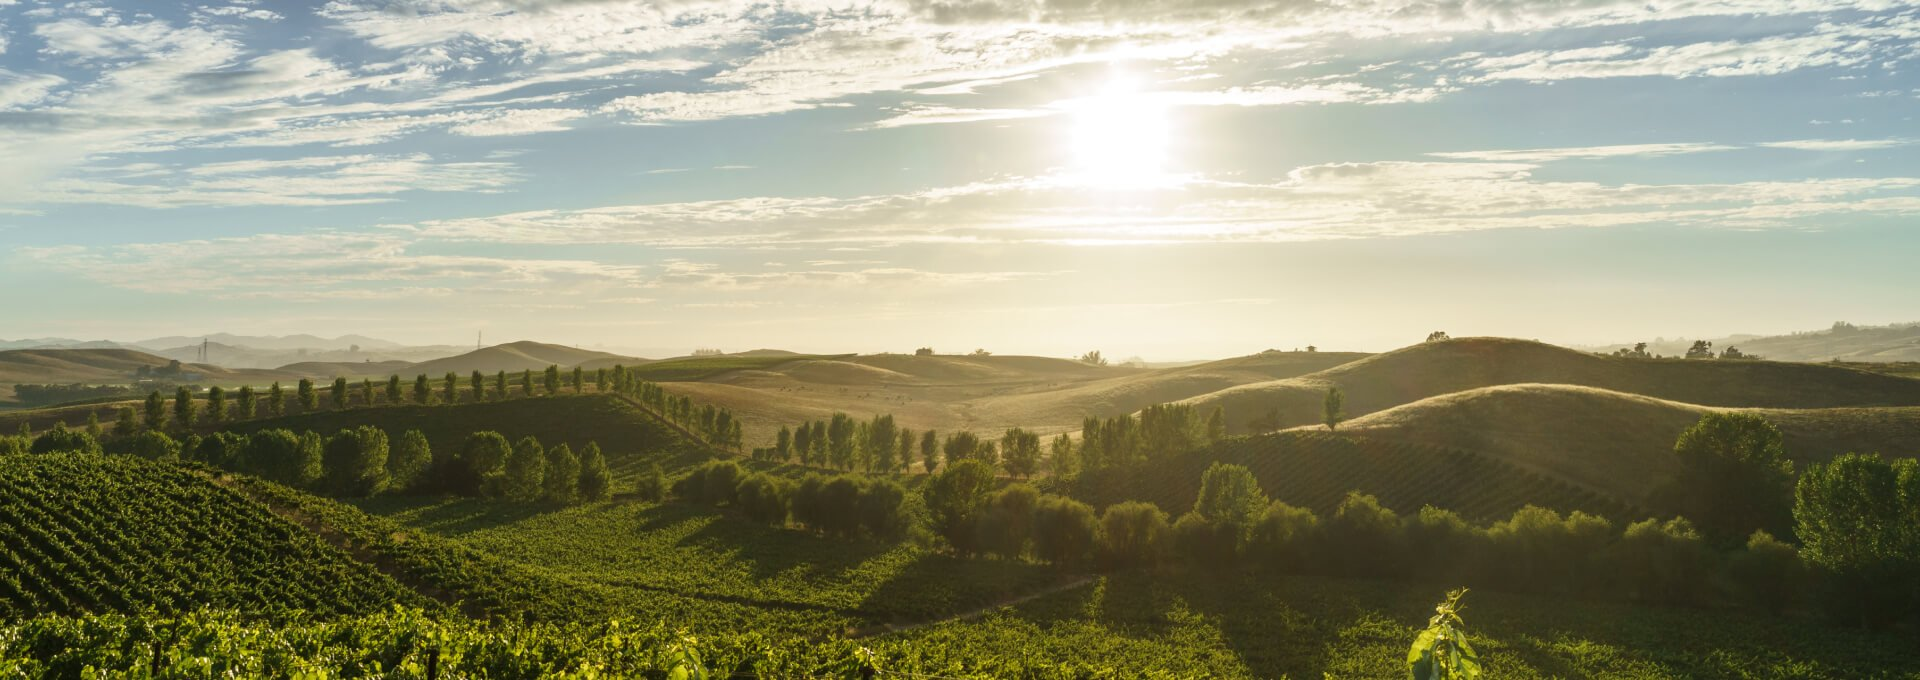 The rolling hills and green vineyards of California's wine country seen in the late afternoon sun.